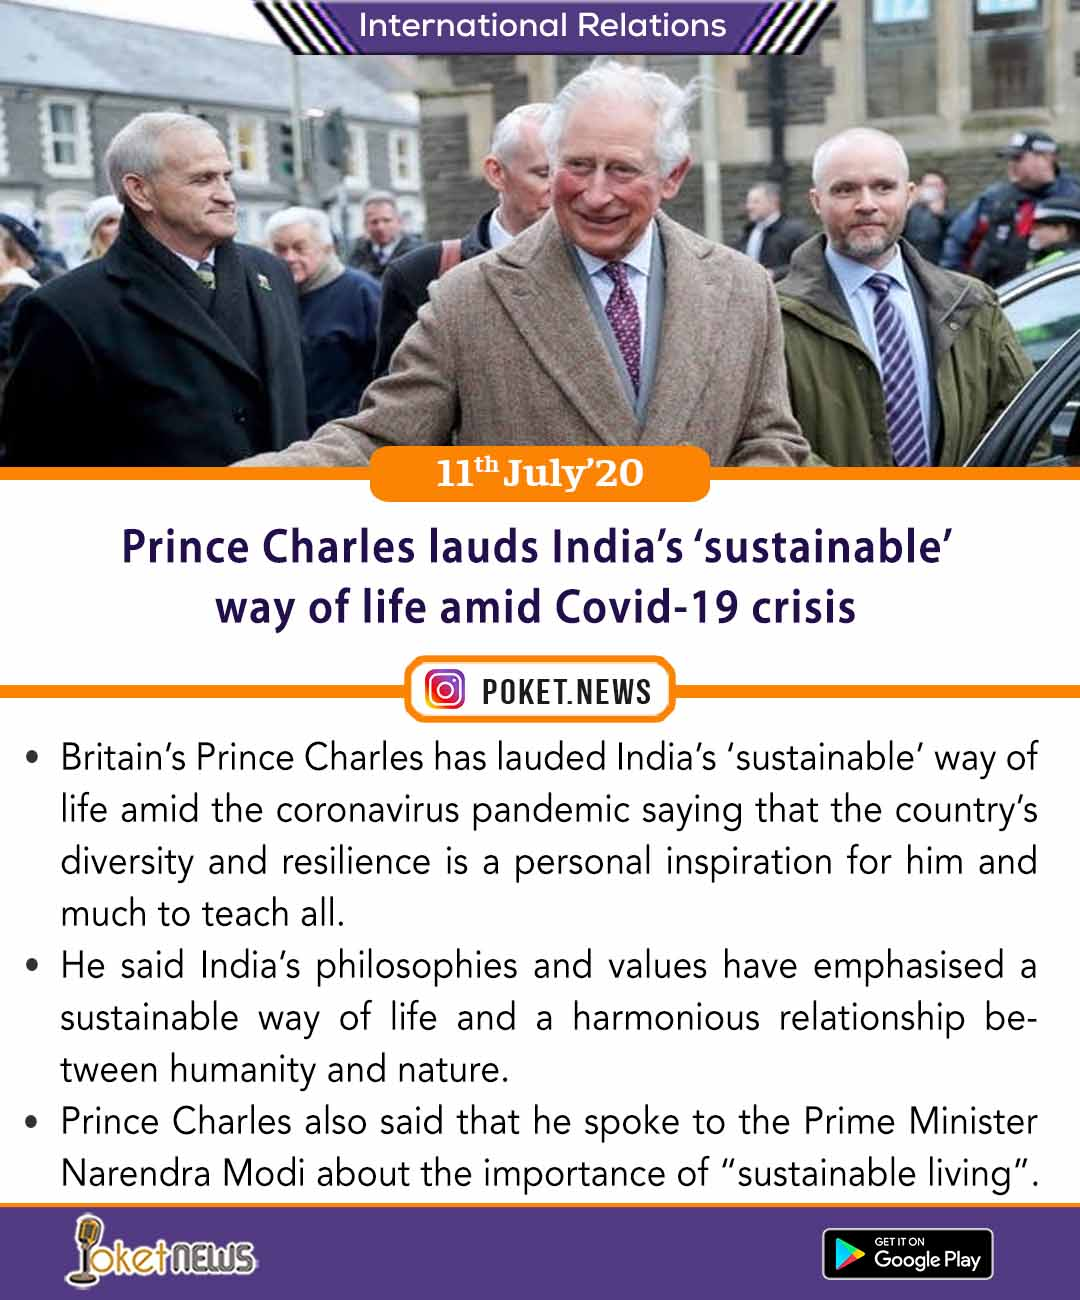 Prince Charles lauds India's 'sustainable' way of life amid Covid-19 crisis